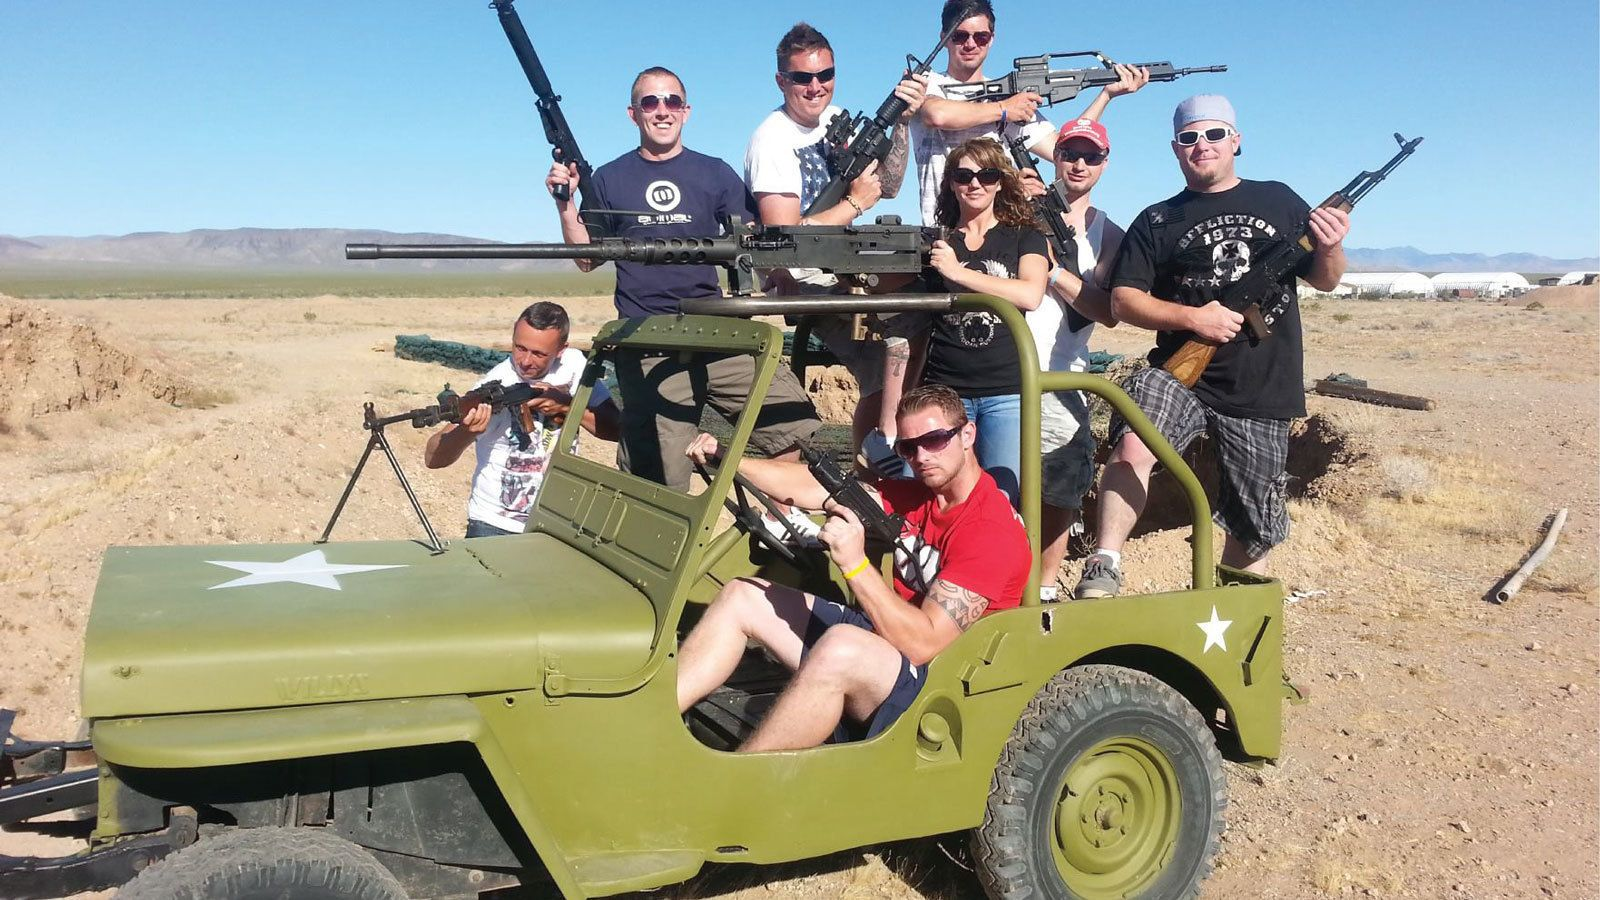 an armed group crowding on a small jeep vehicle in Las Vegas